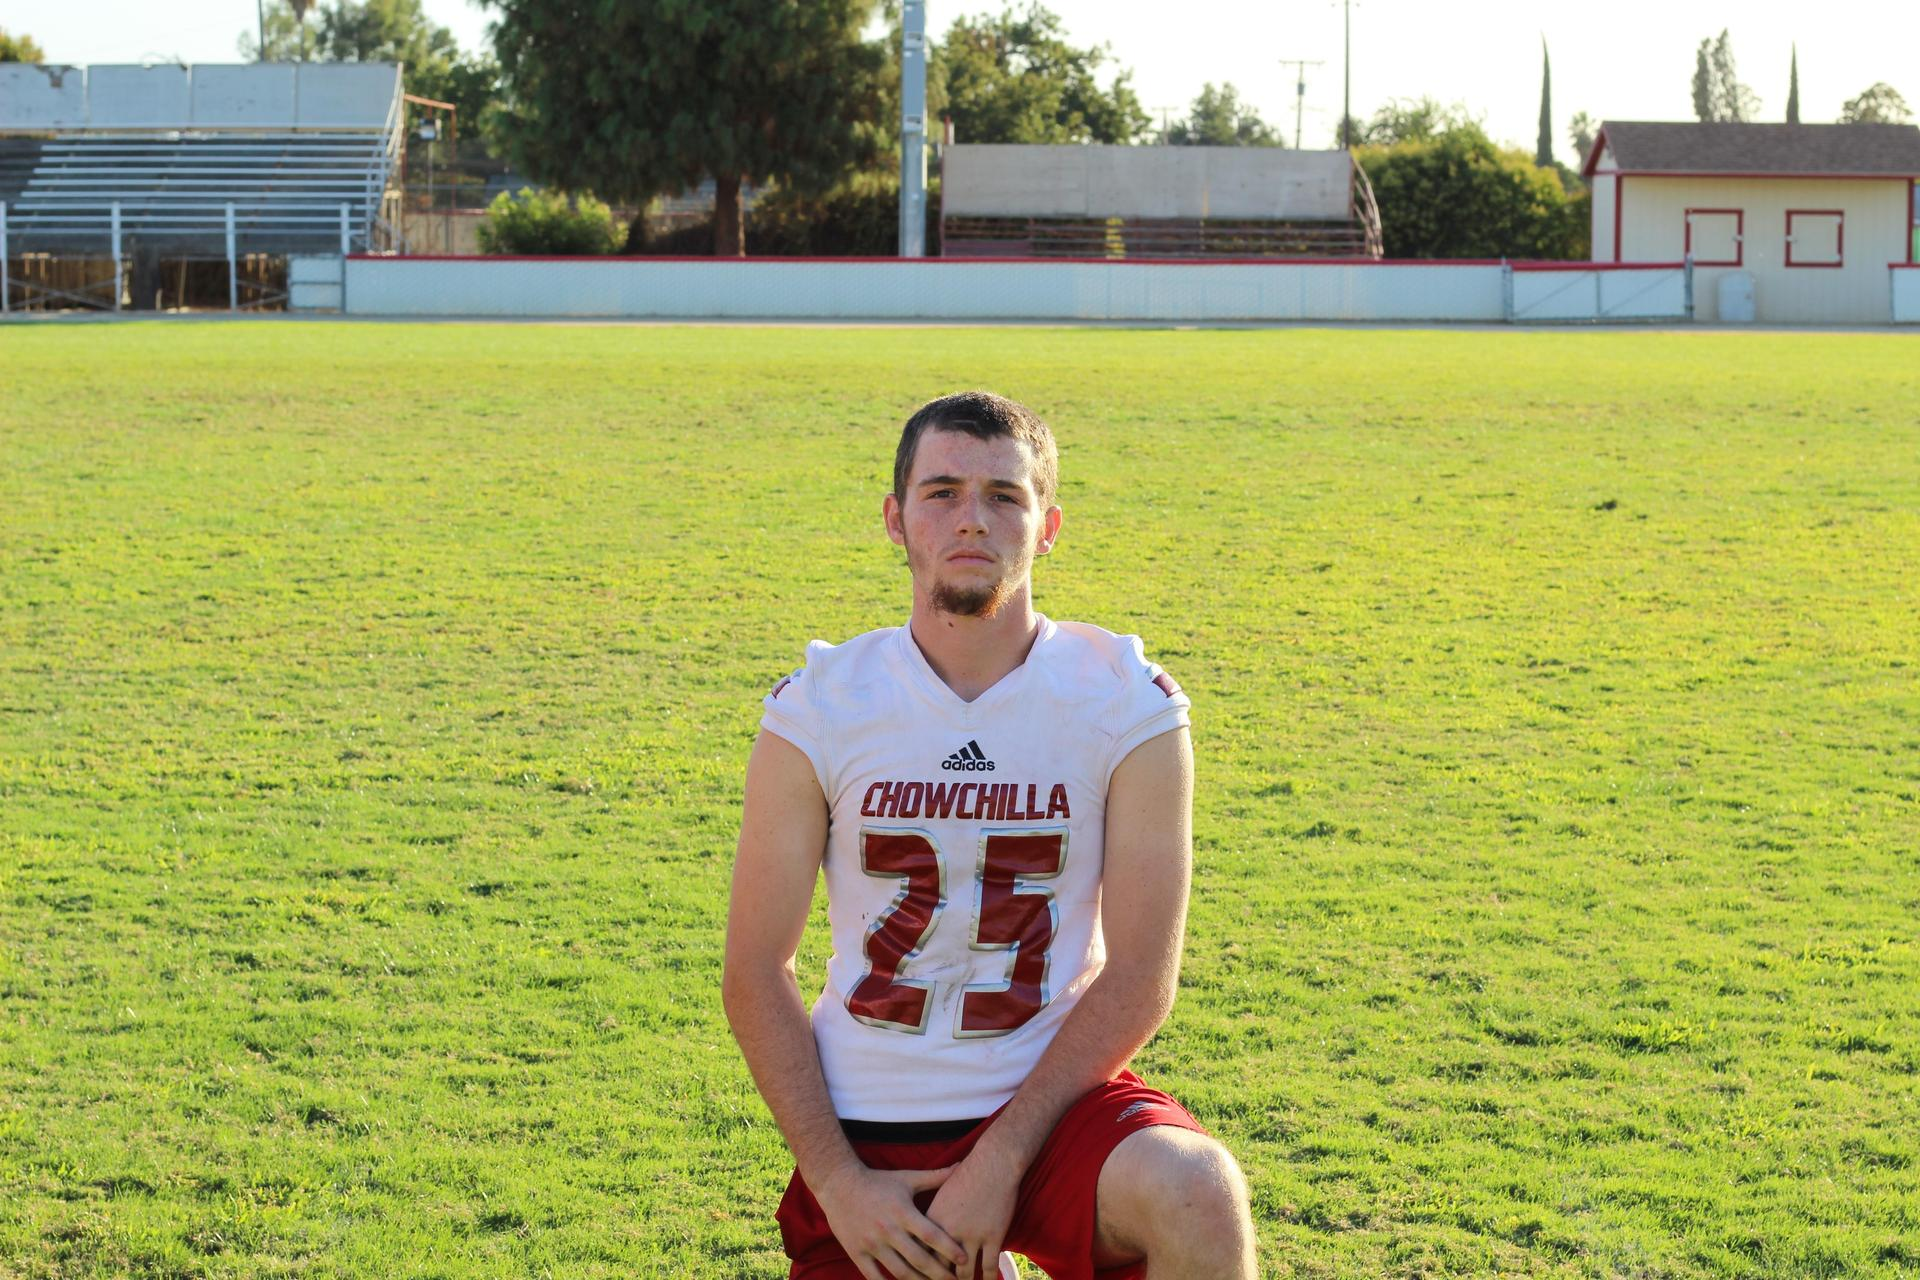 Varsity football player posing